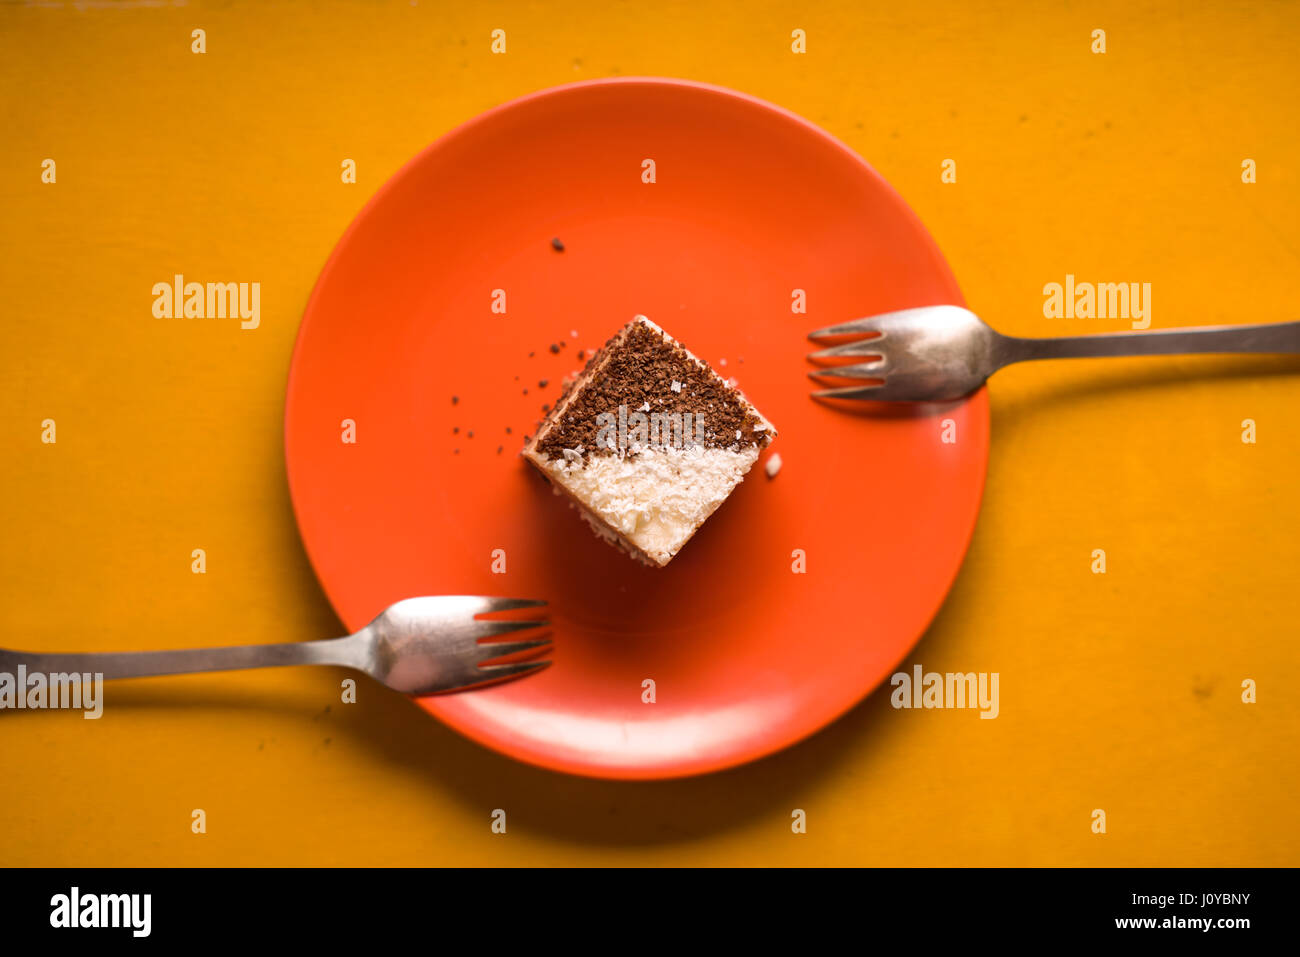 Chocolate cake with coconut chips on a ceramic plate - Stock Image